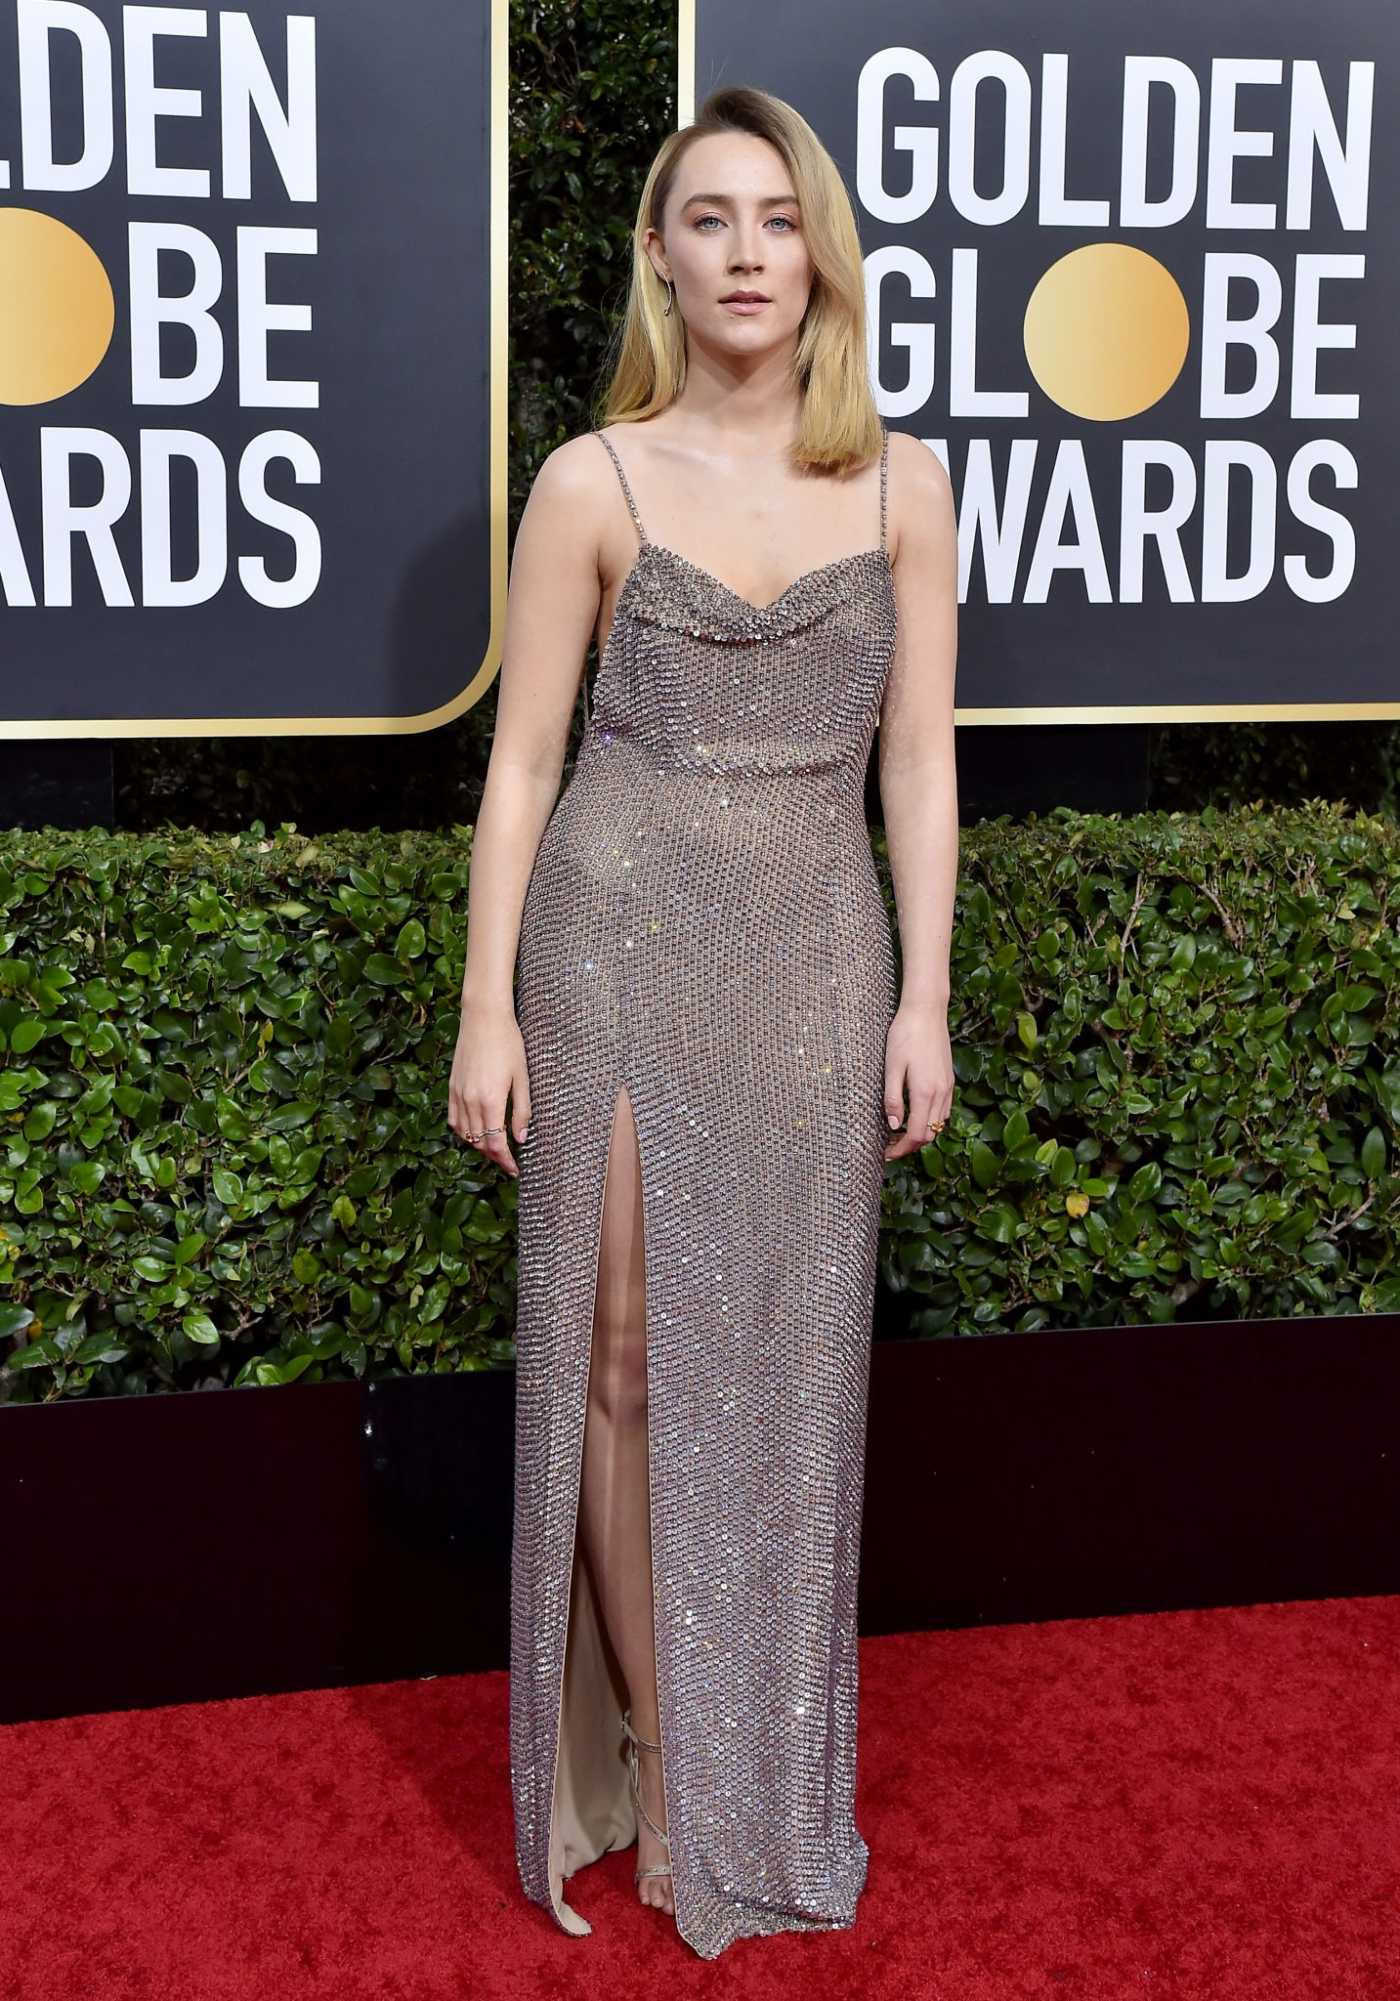 Saoirse Ronan Attends the 77th Annual Golden Globe Awards at the Beverly Hilton Hotel in Beverly Hills 01/05/2020